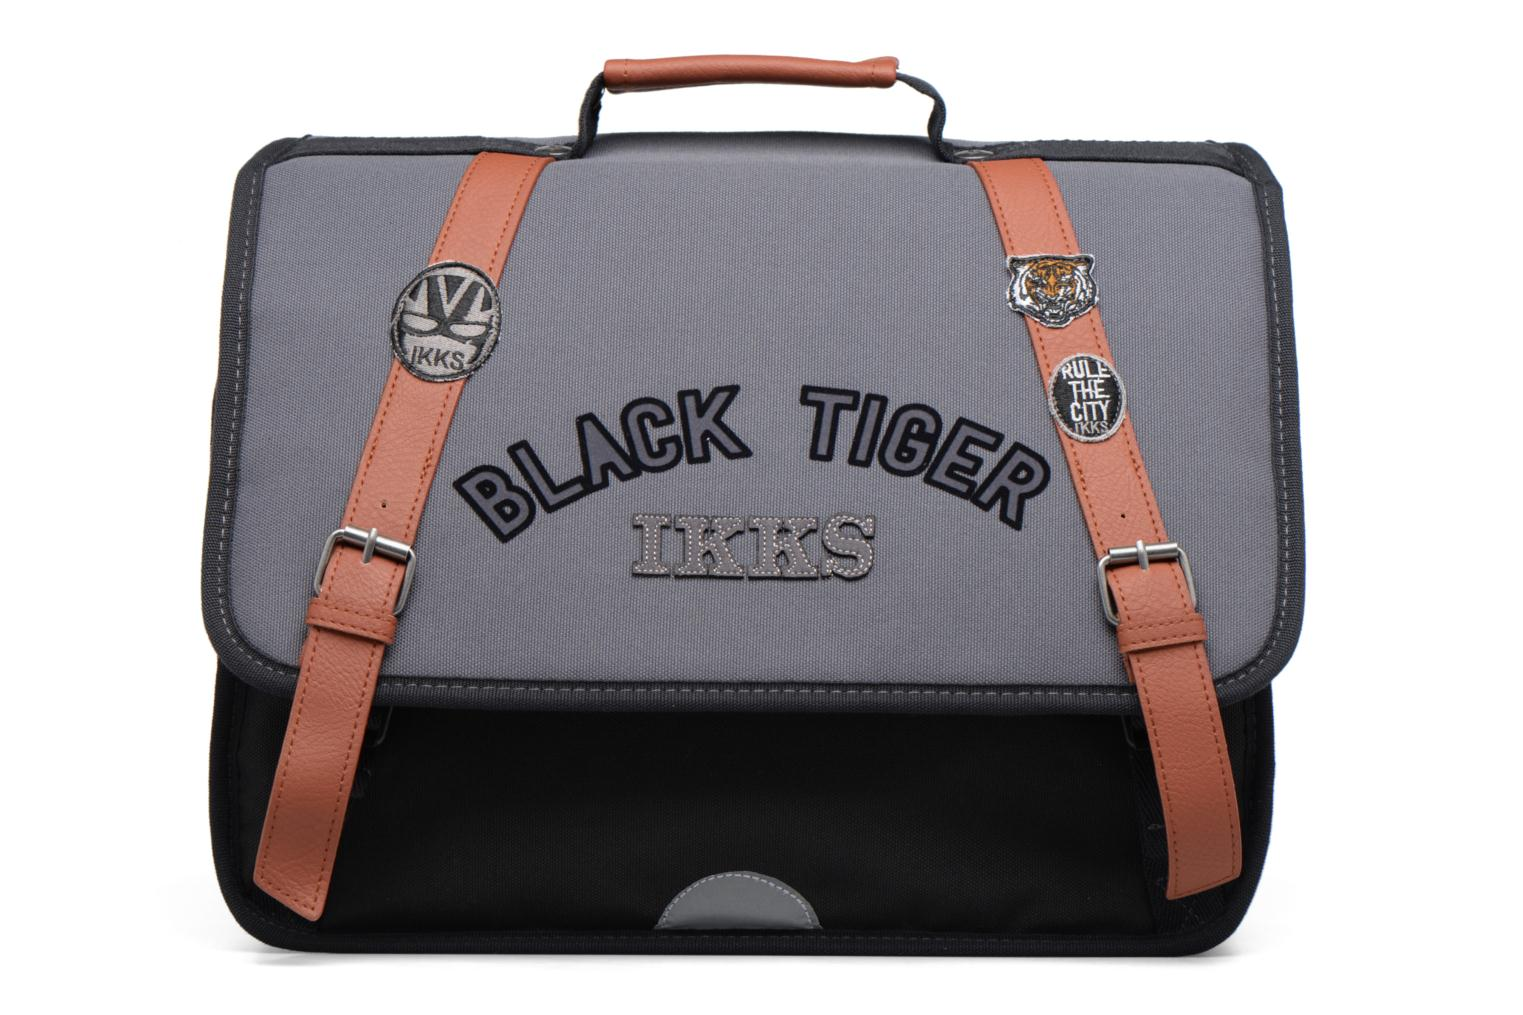 Cartable 38cm Black Tiger Ardoise